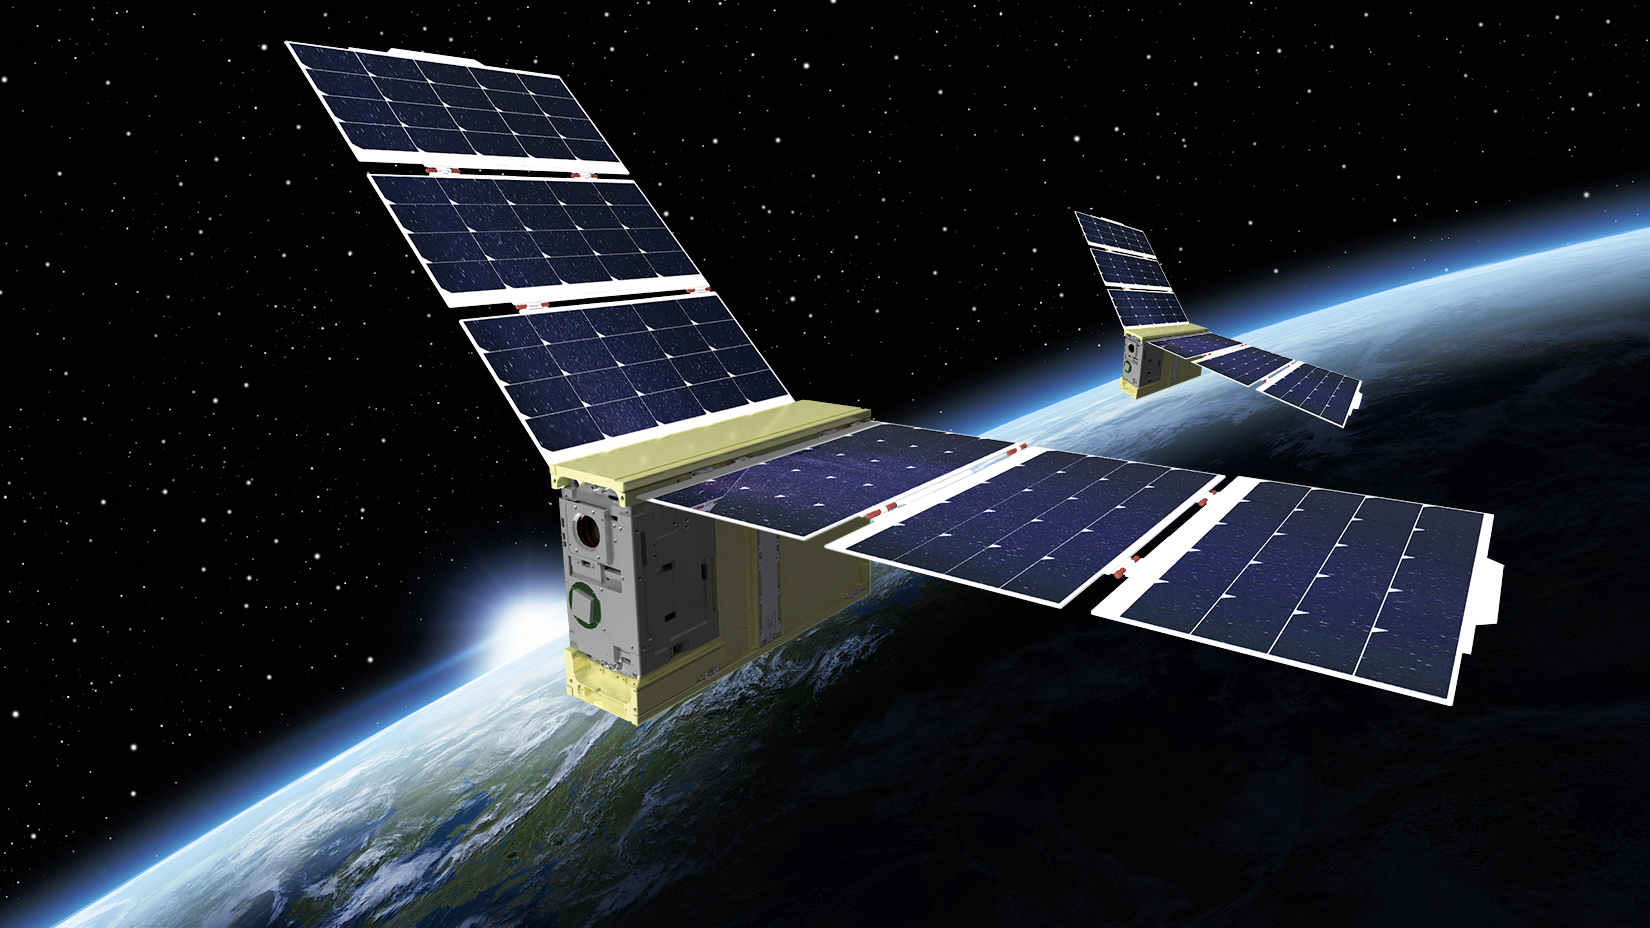 Dynetics completes Lonestar Tactical Space Support Payloads thumbnail image